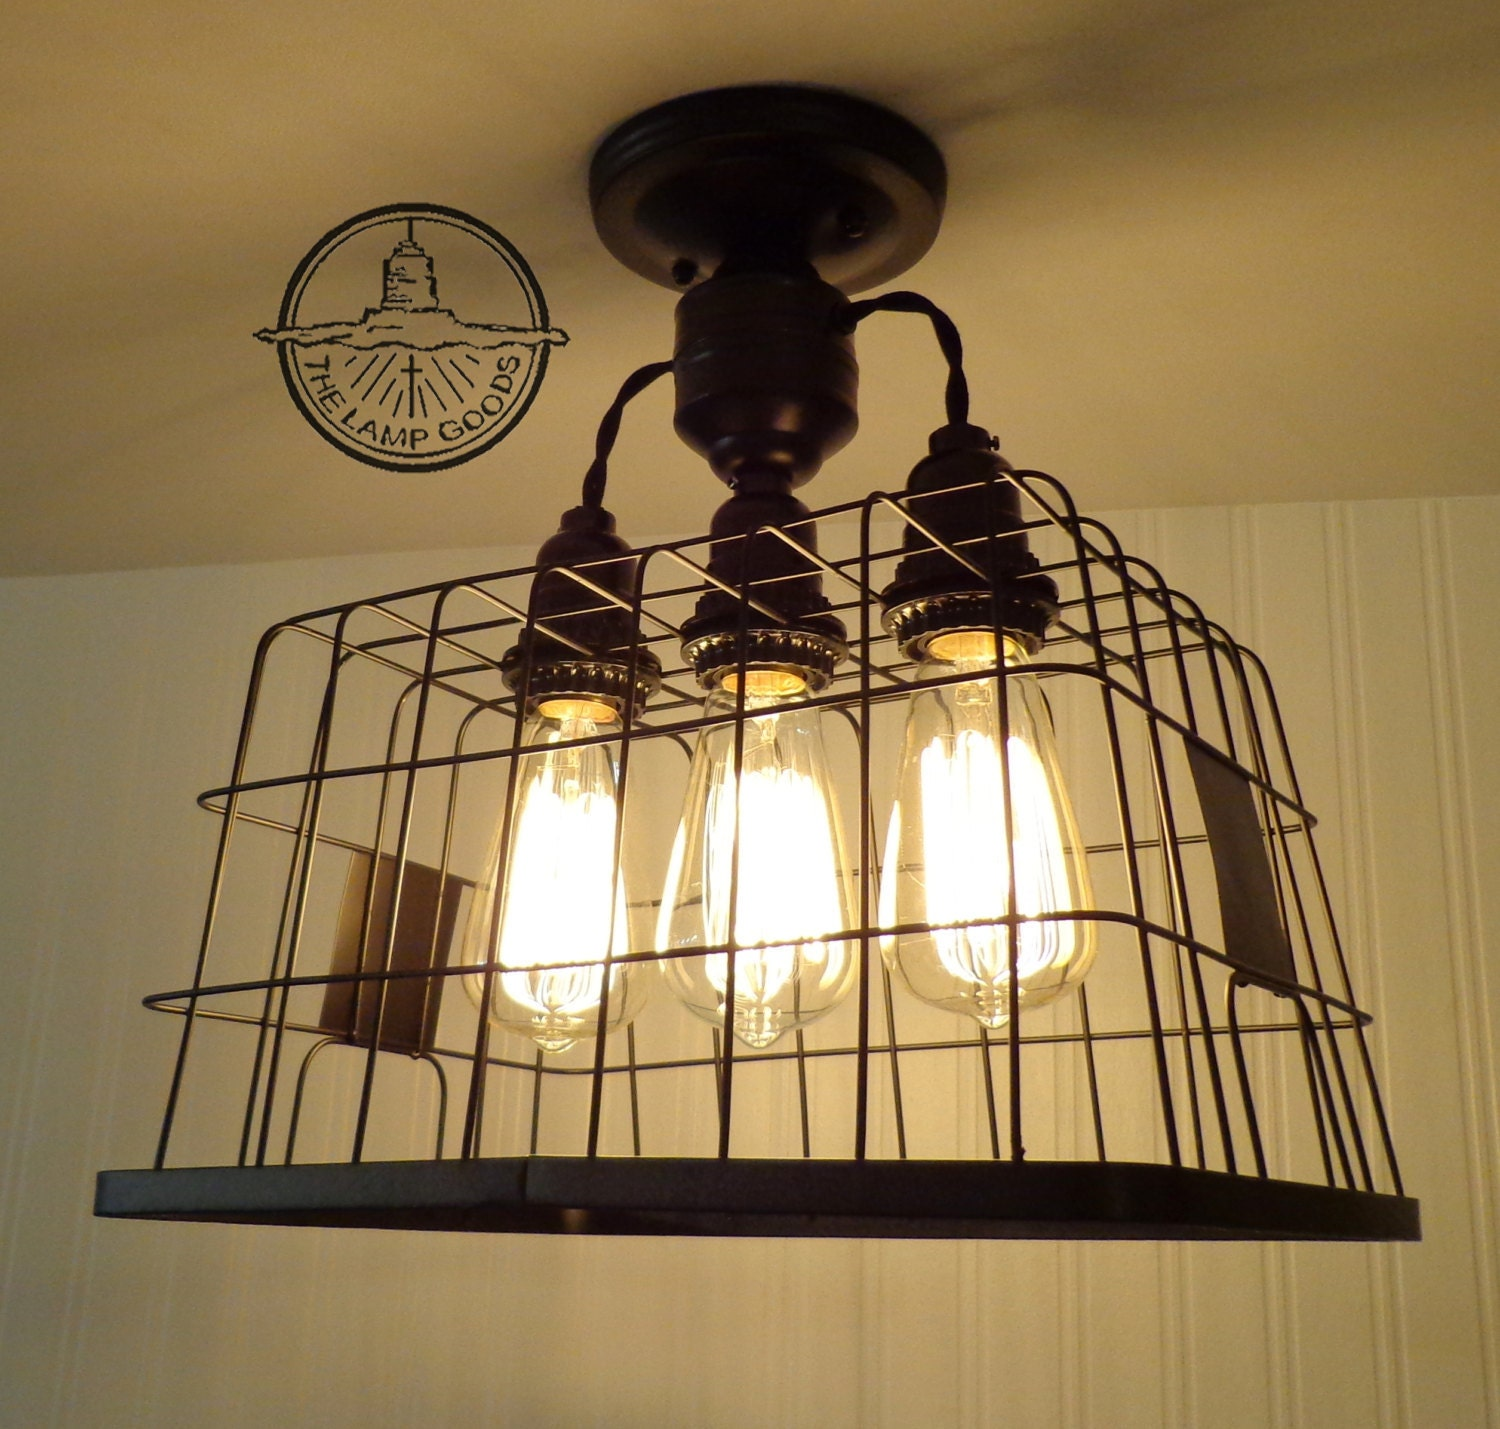 Flush Mount CEILING LIGHT Basket with Edison bulbs Lighting